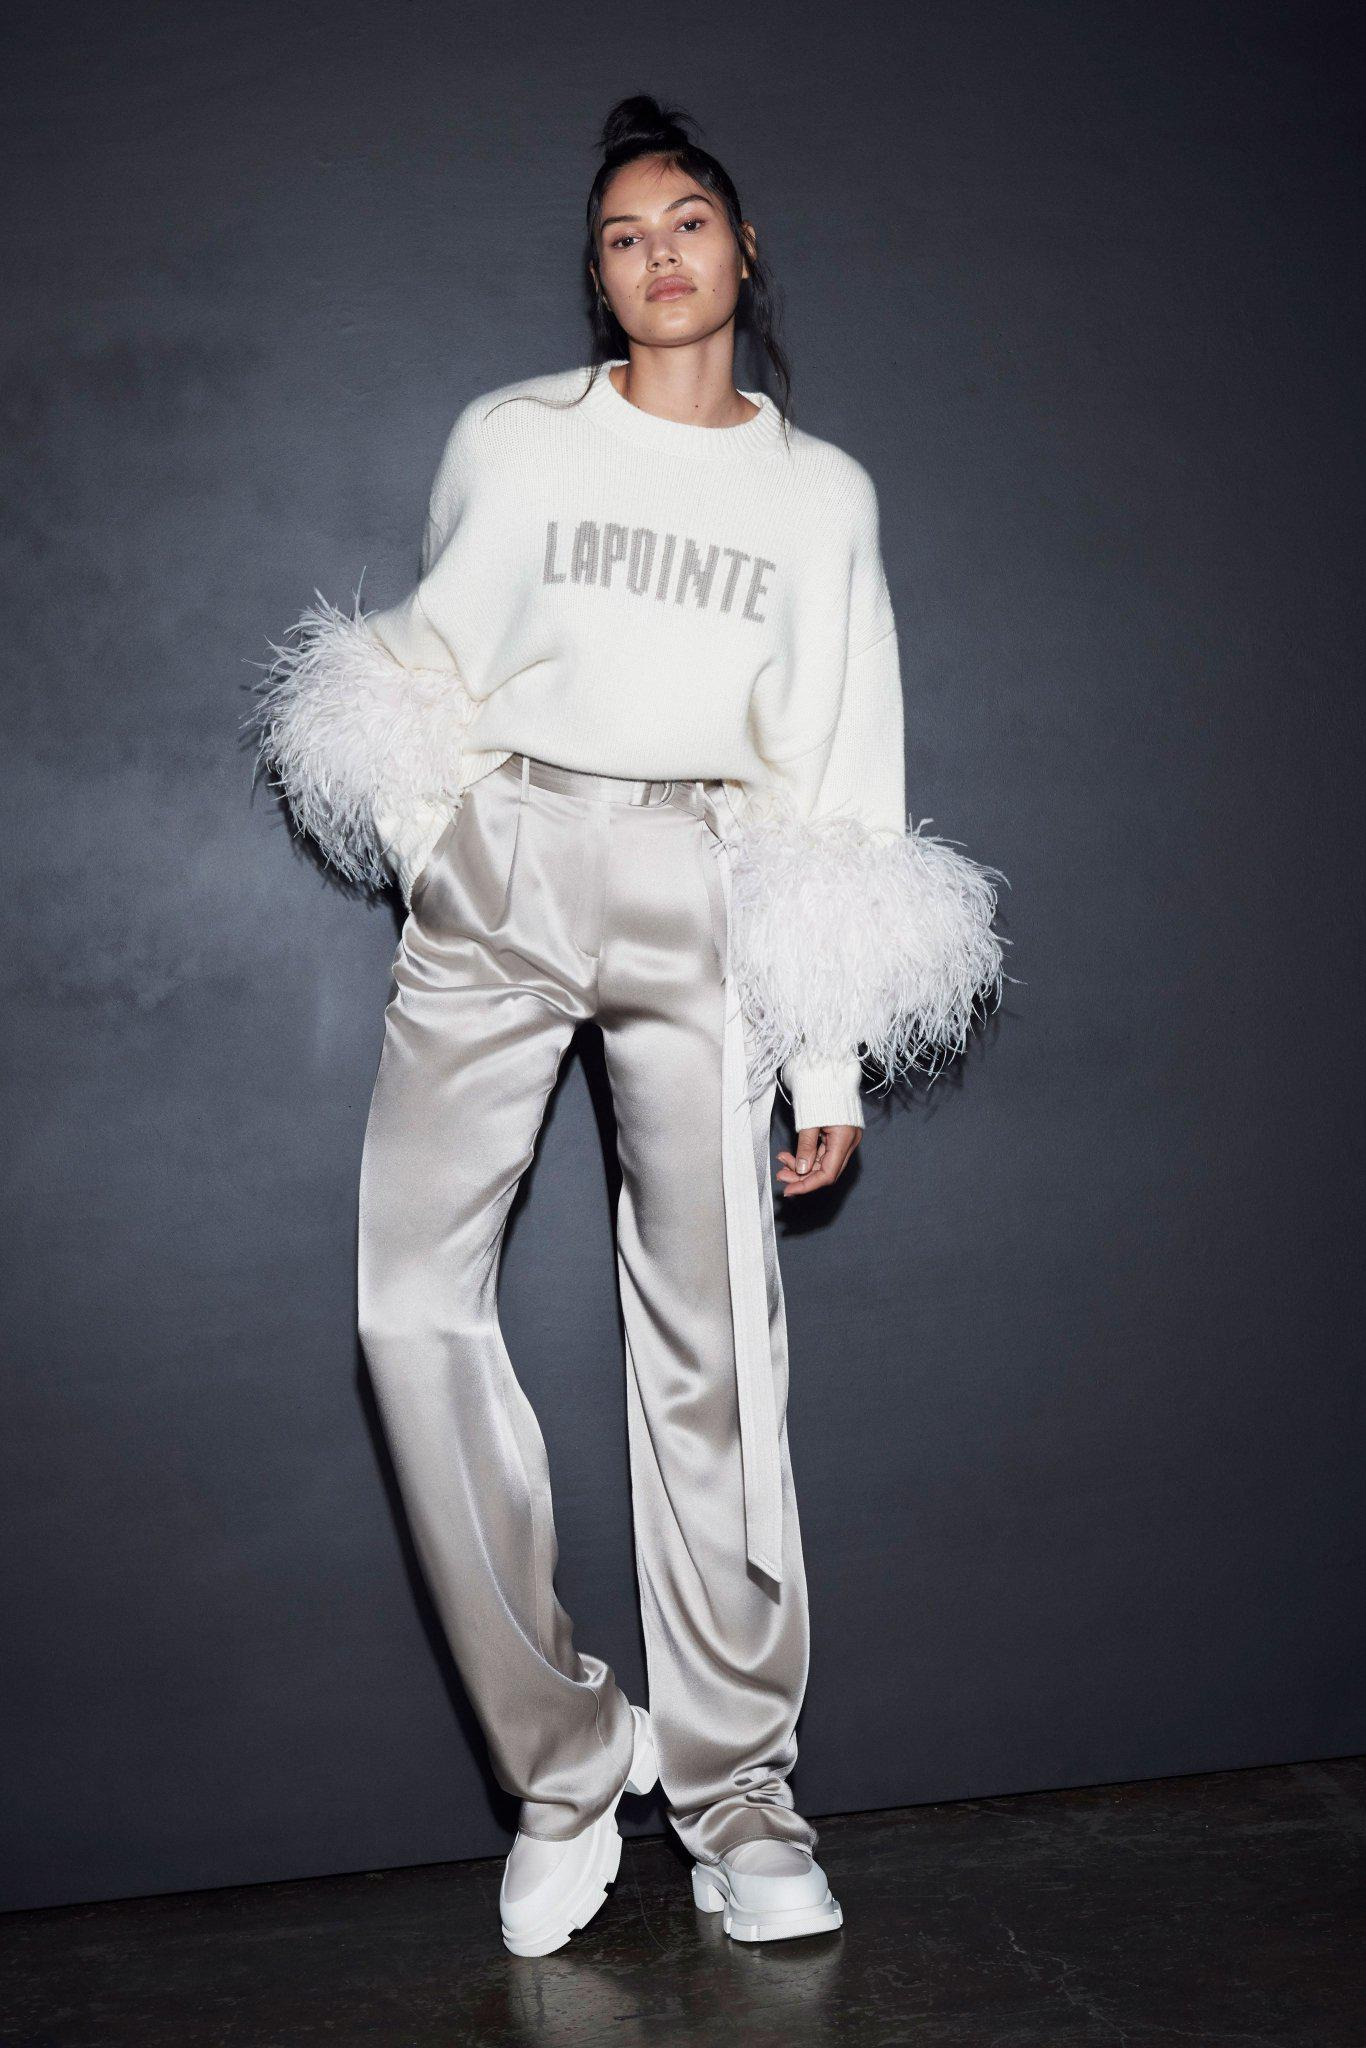 LAPOINTE SWEATER WITH FEATHERS